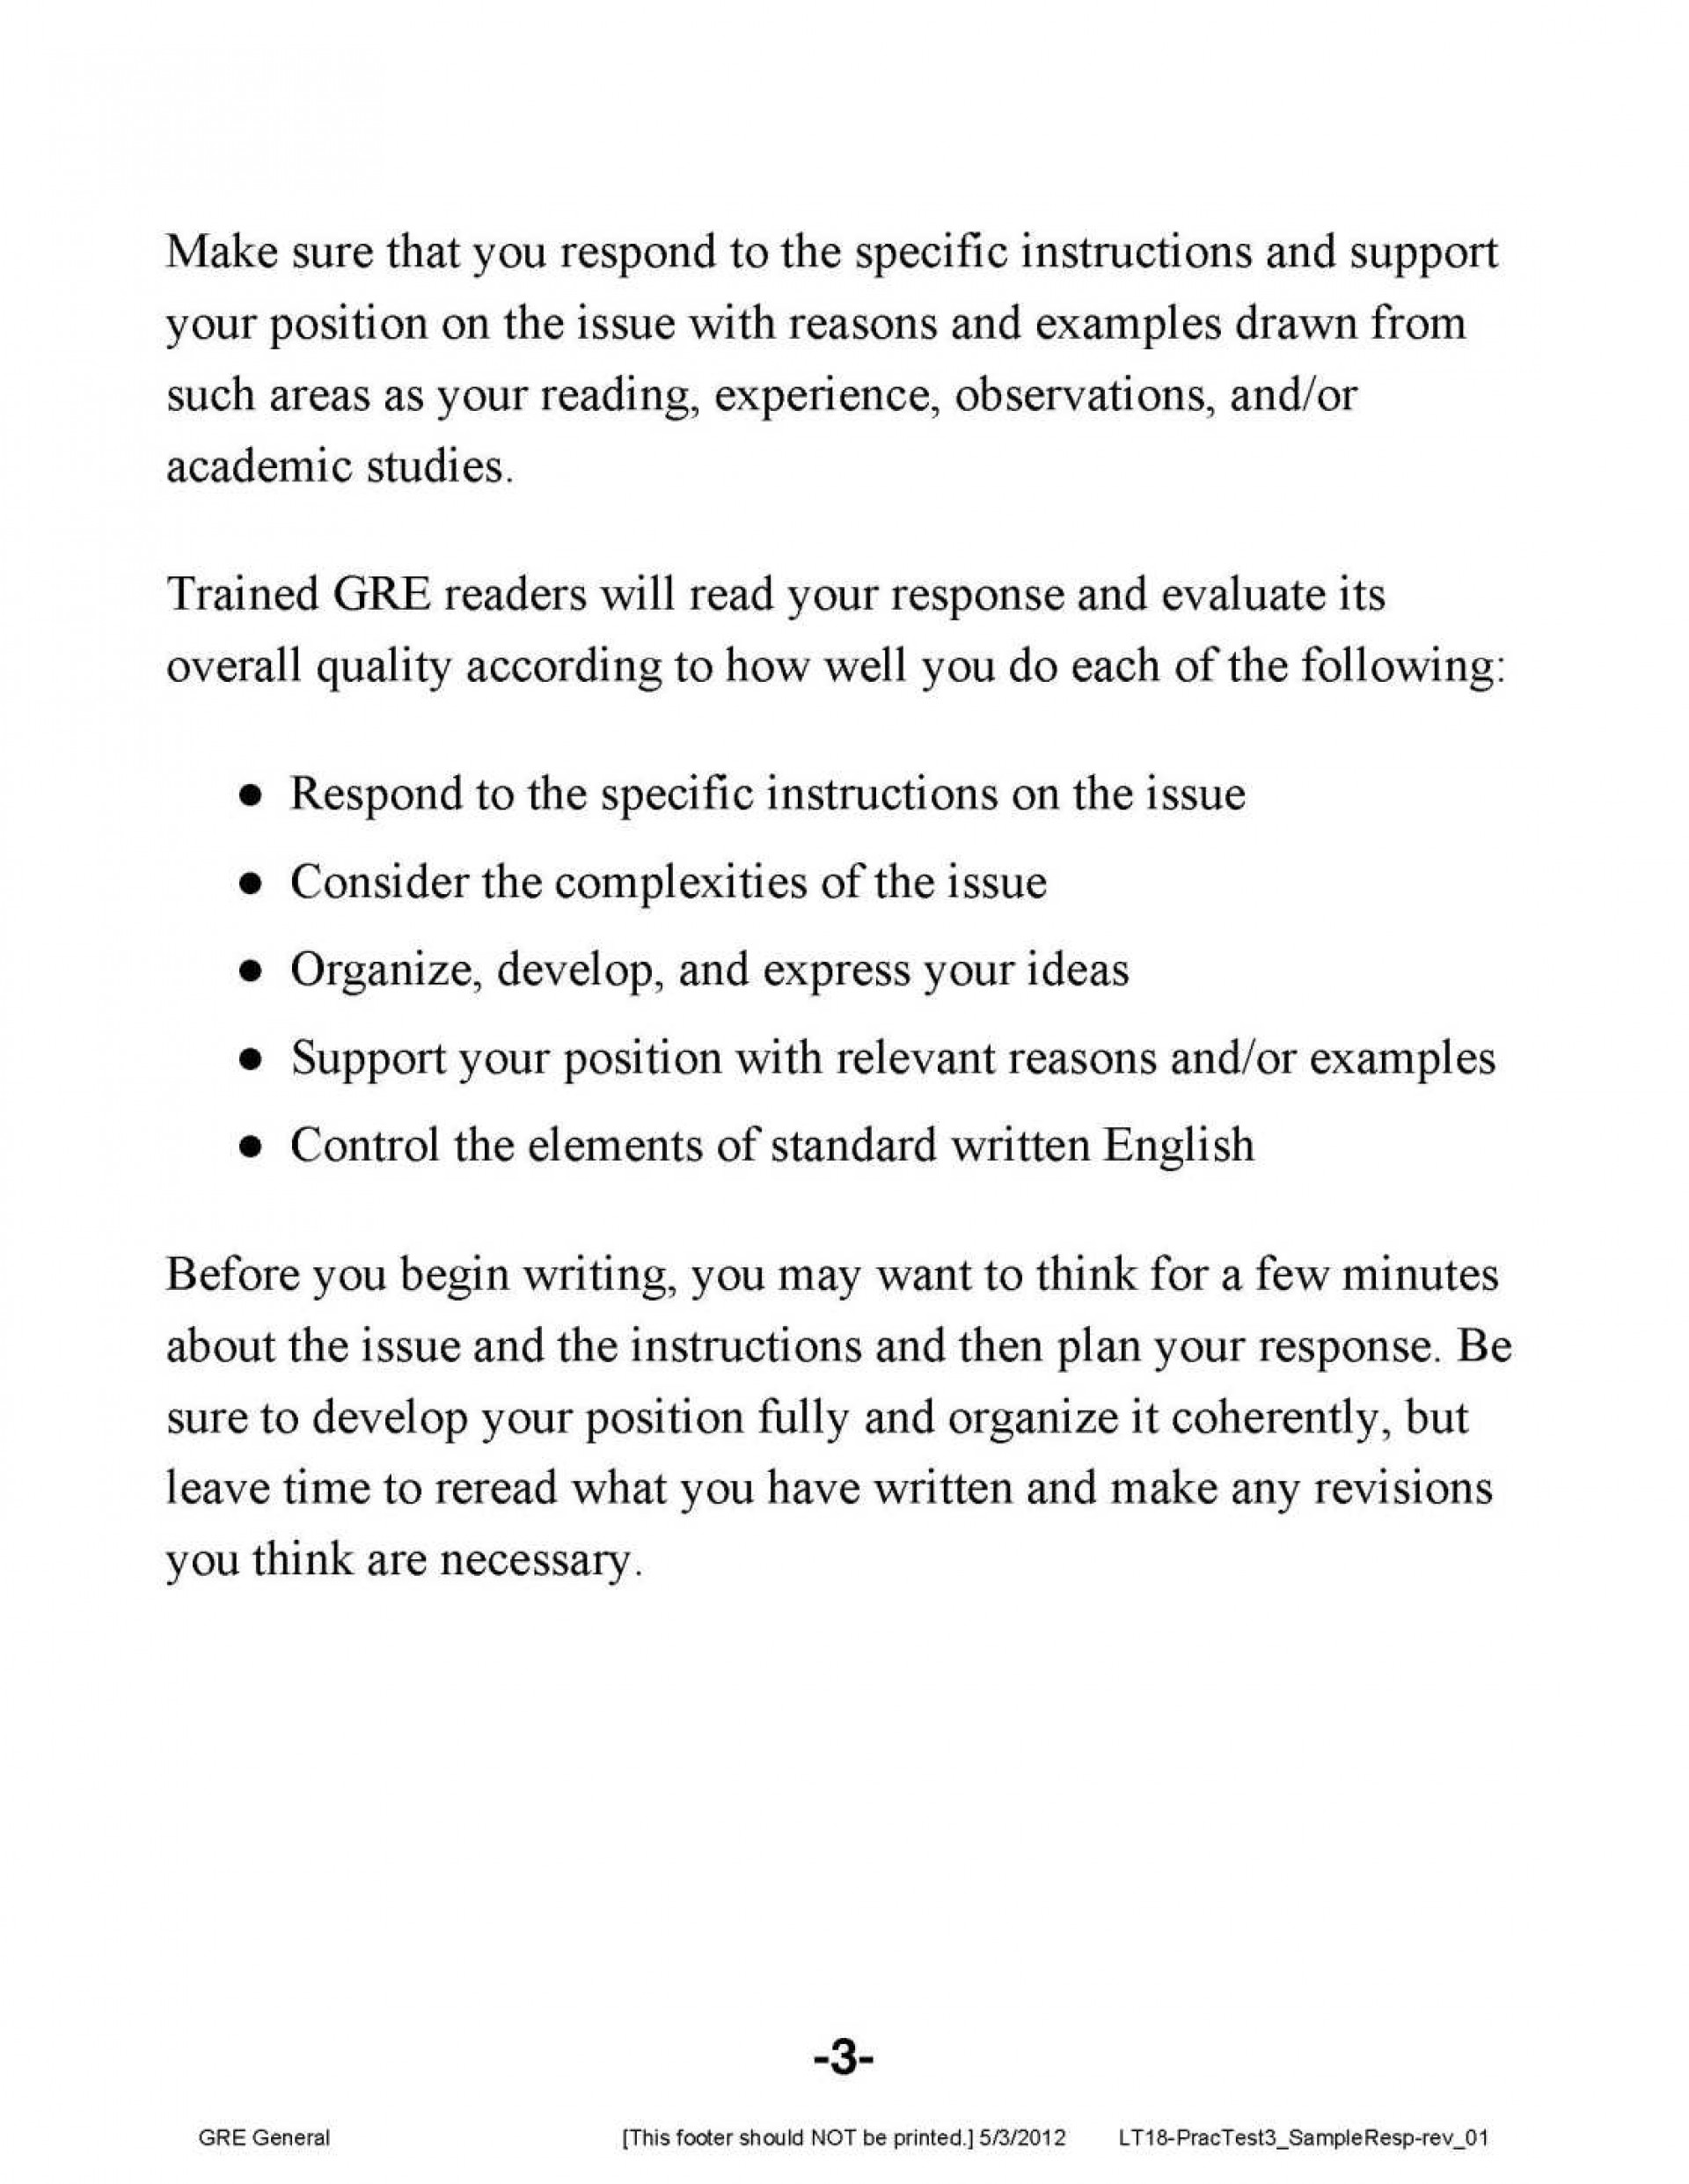 020 Biography Essay Gre Analytical Writing Sample Essays Impressive Conclusion Examples College Titles 1920